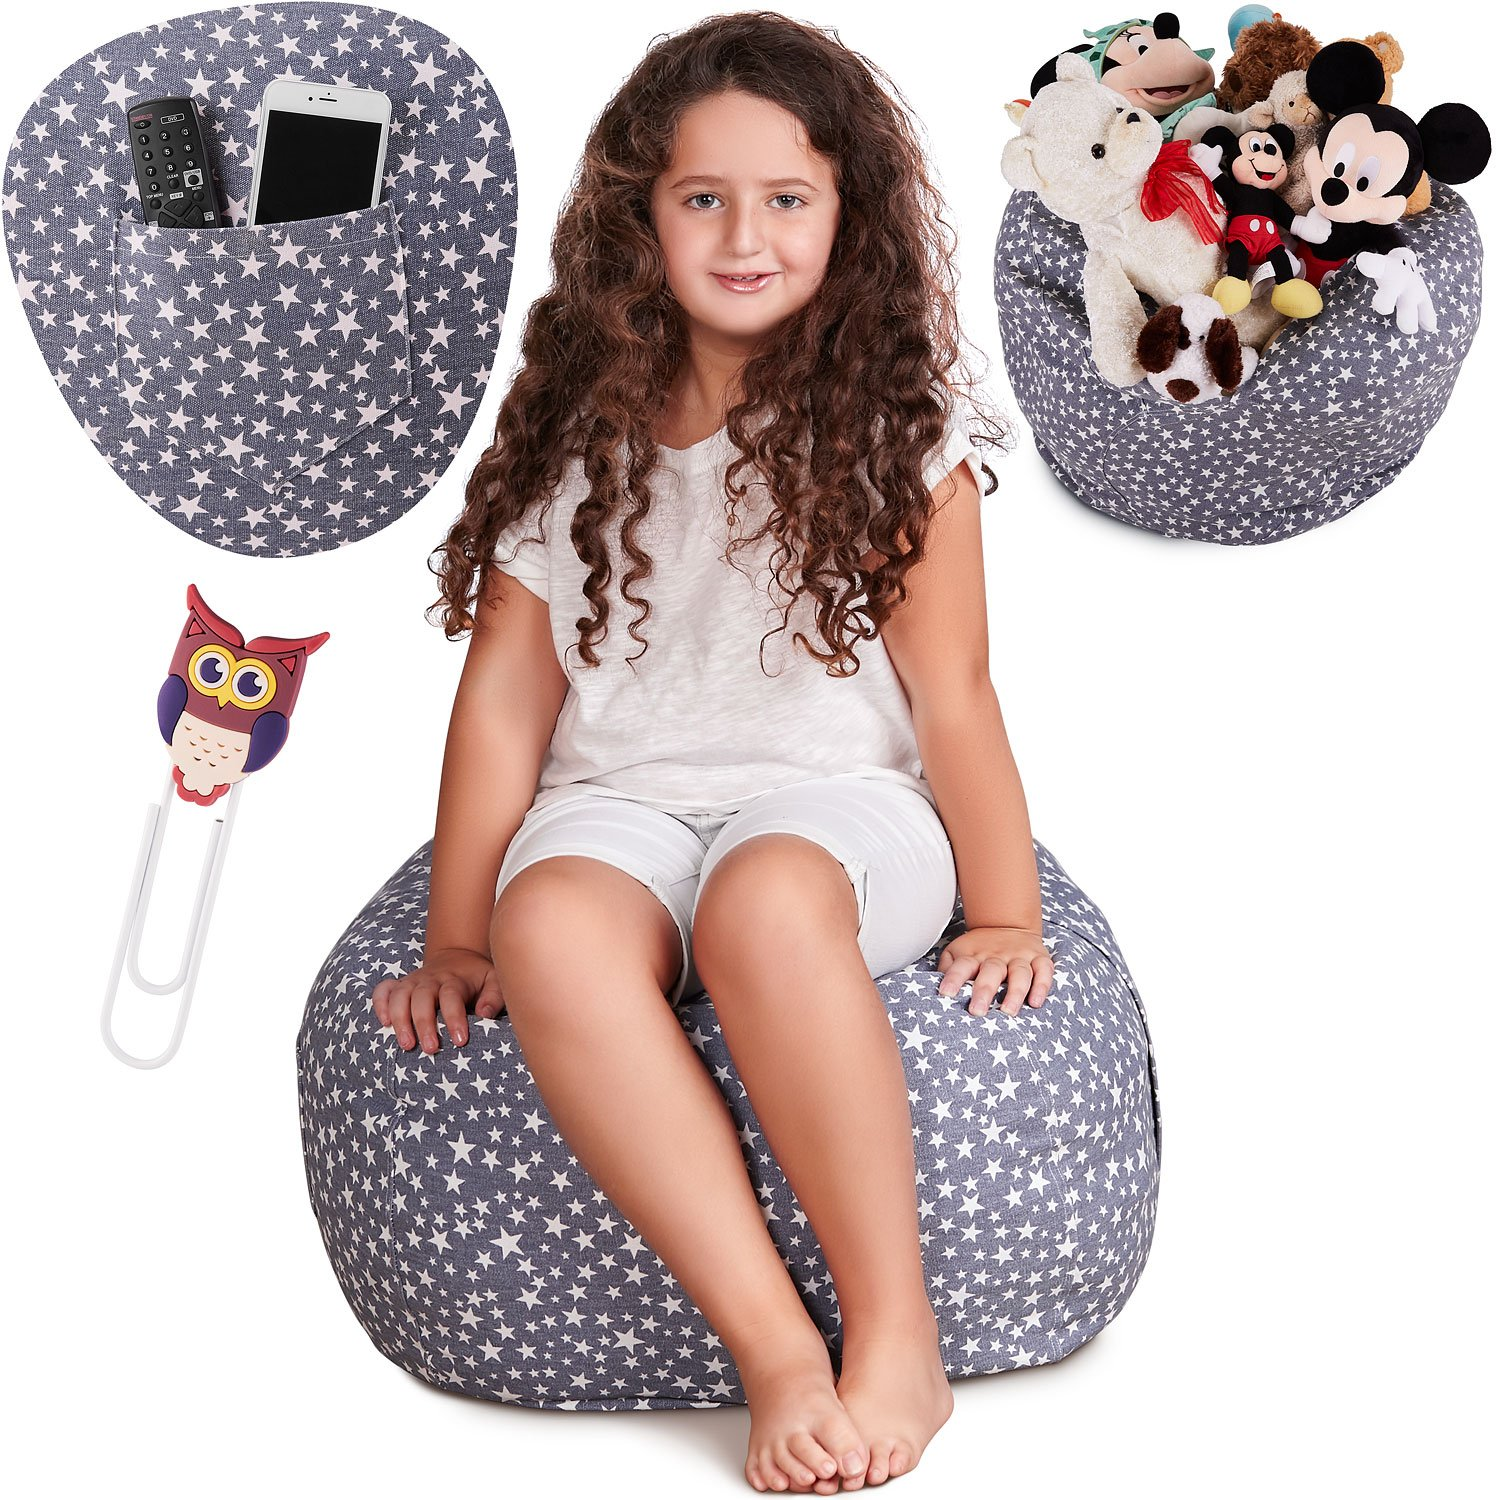 Premium Large Stuffed Animal Storage Bean Bag Chair, Free Bookmark and Pocket, Unisex, Multipurpose Storage, Perfect Decorative Kid's Room, Playroom Toy Organizer, Replace Your Mesh Toy Hammock or Net